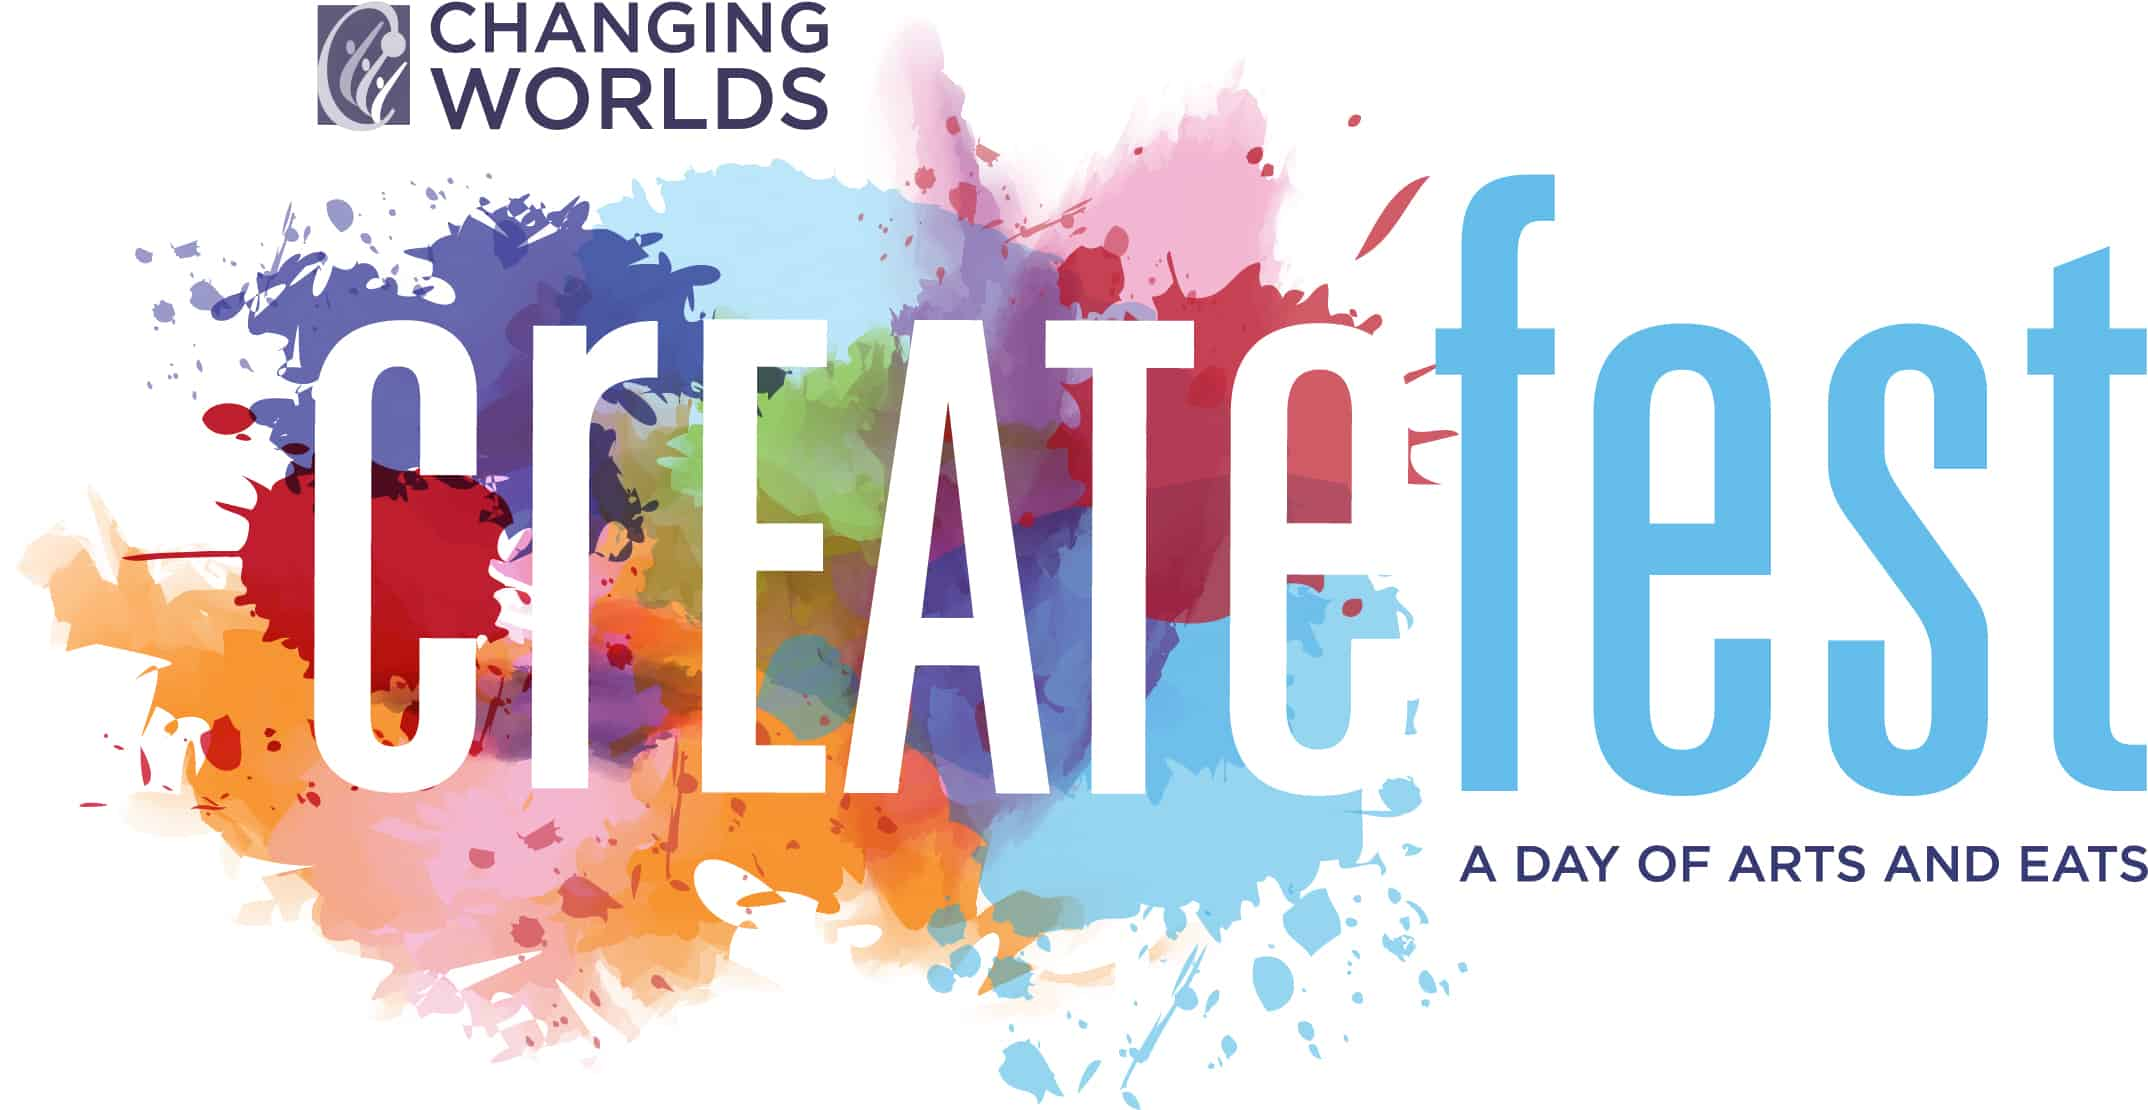 A day of arts and eats: CrEATfest August 9th